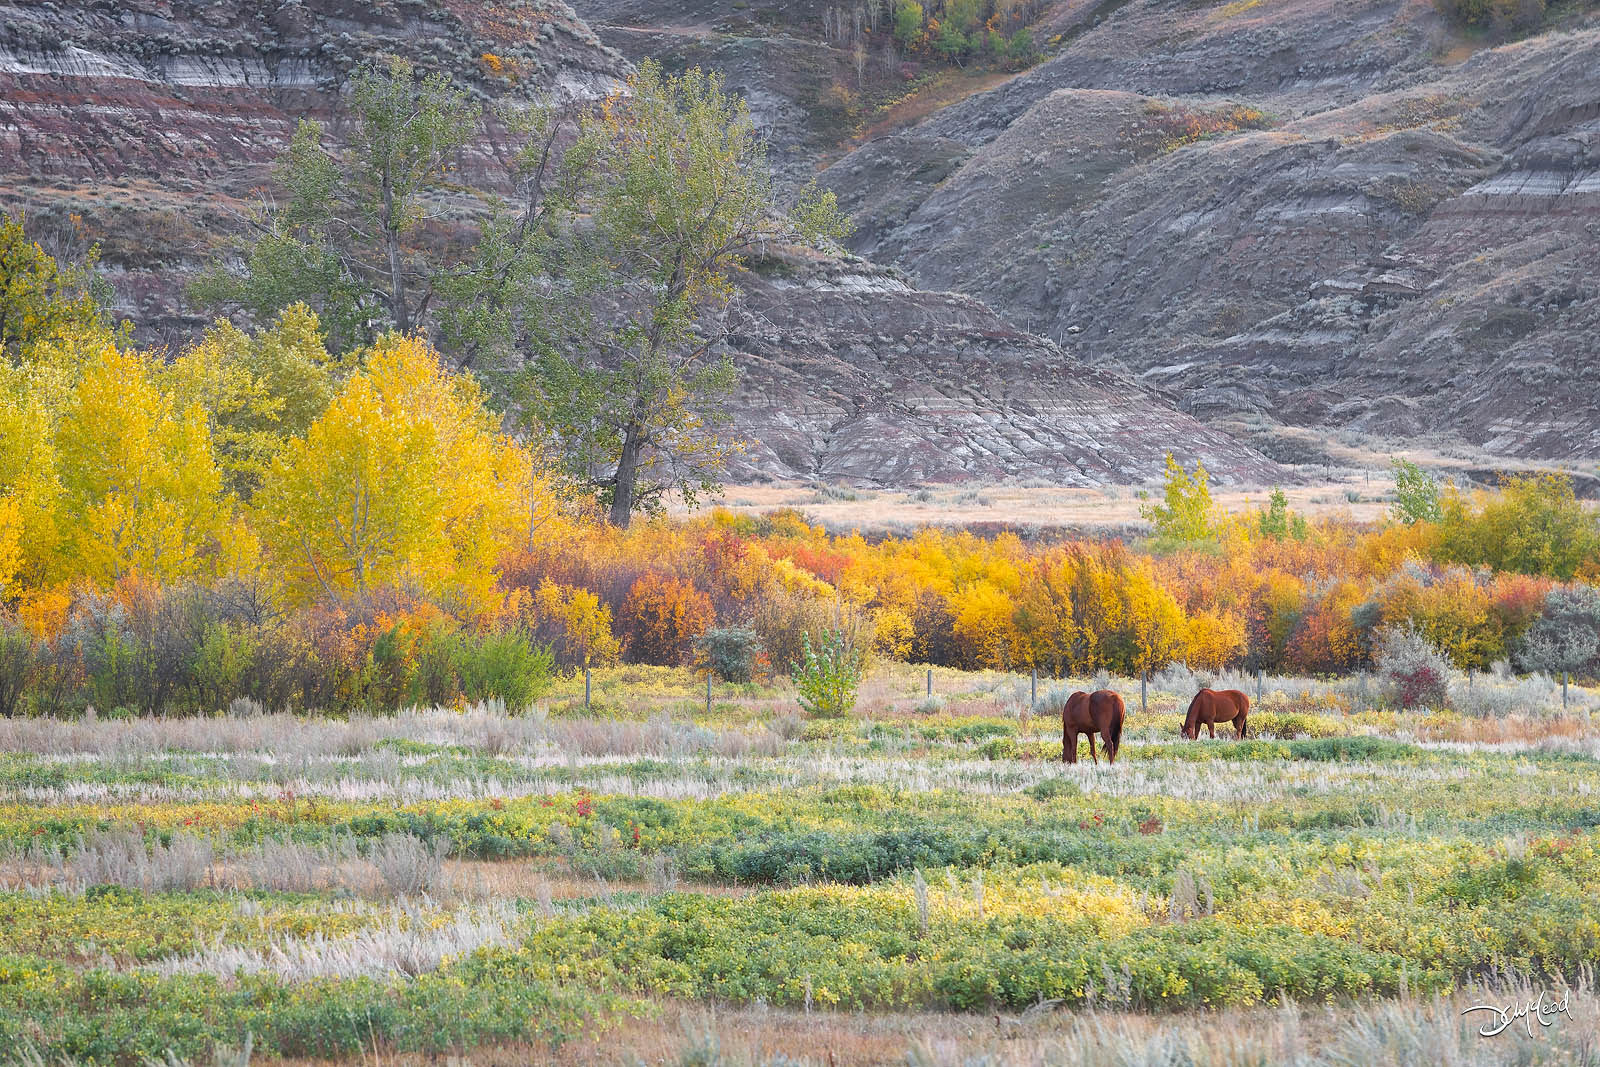 Two horses graze in a field with colorful trees near Drumheller, Alberta, Canada.